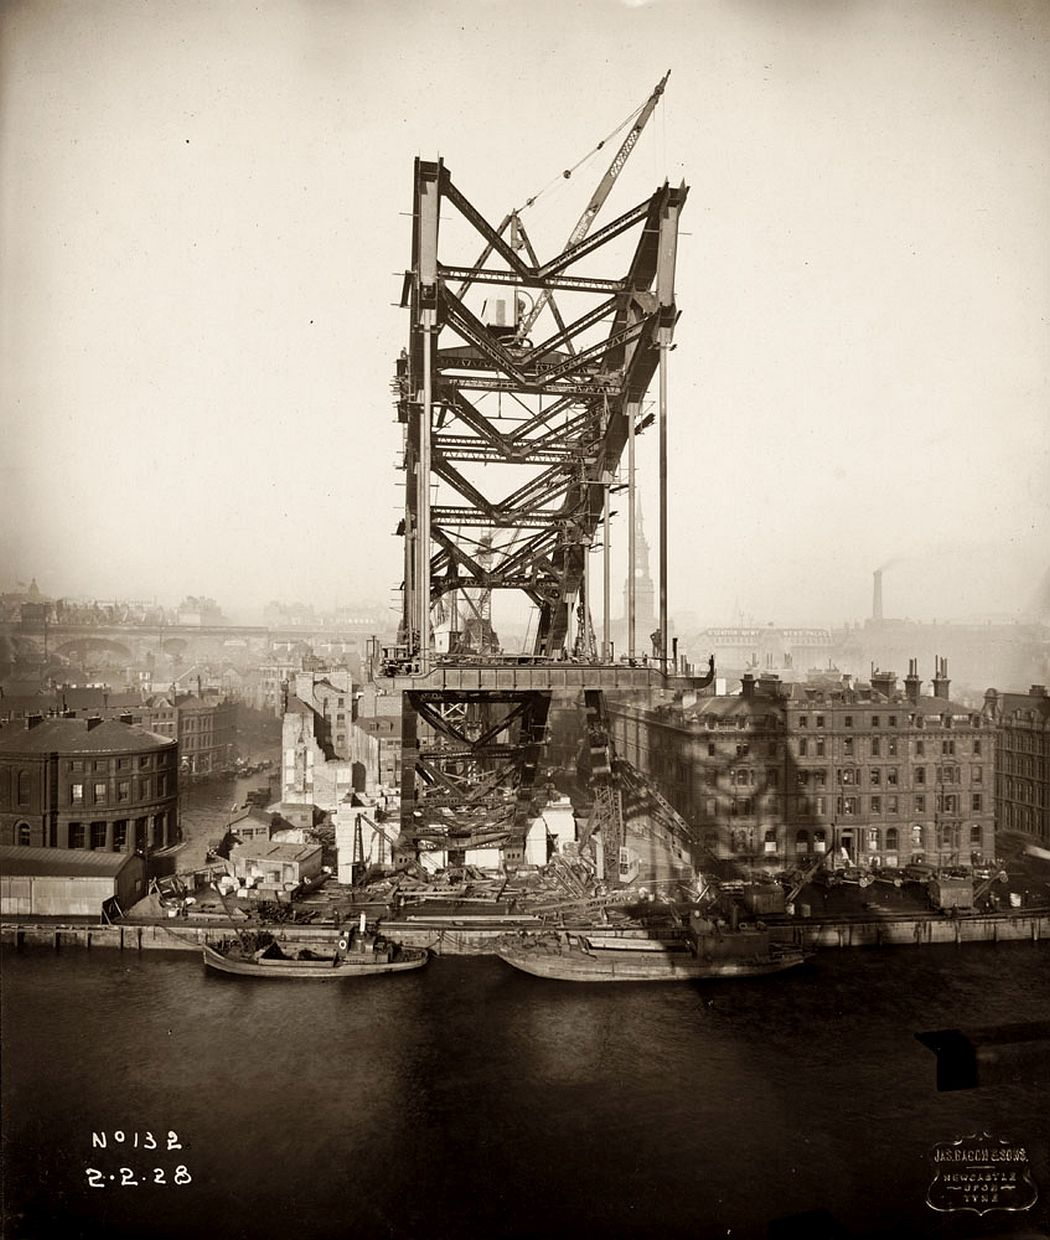 View of the Newcastle side of the Tyne Bridge captured during its construction on 2 February 1928